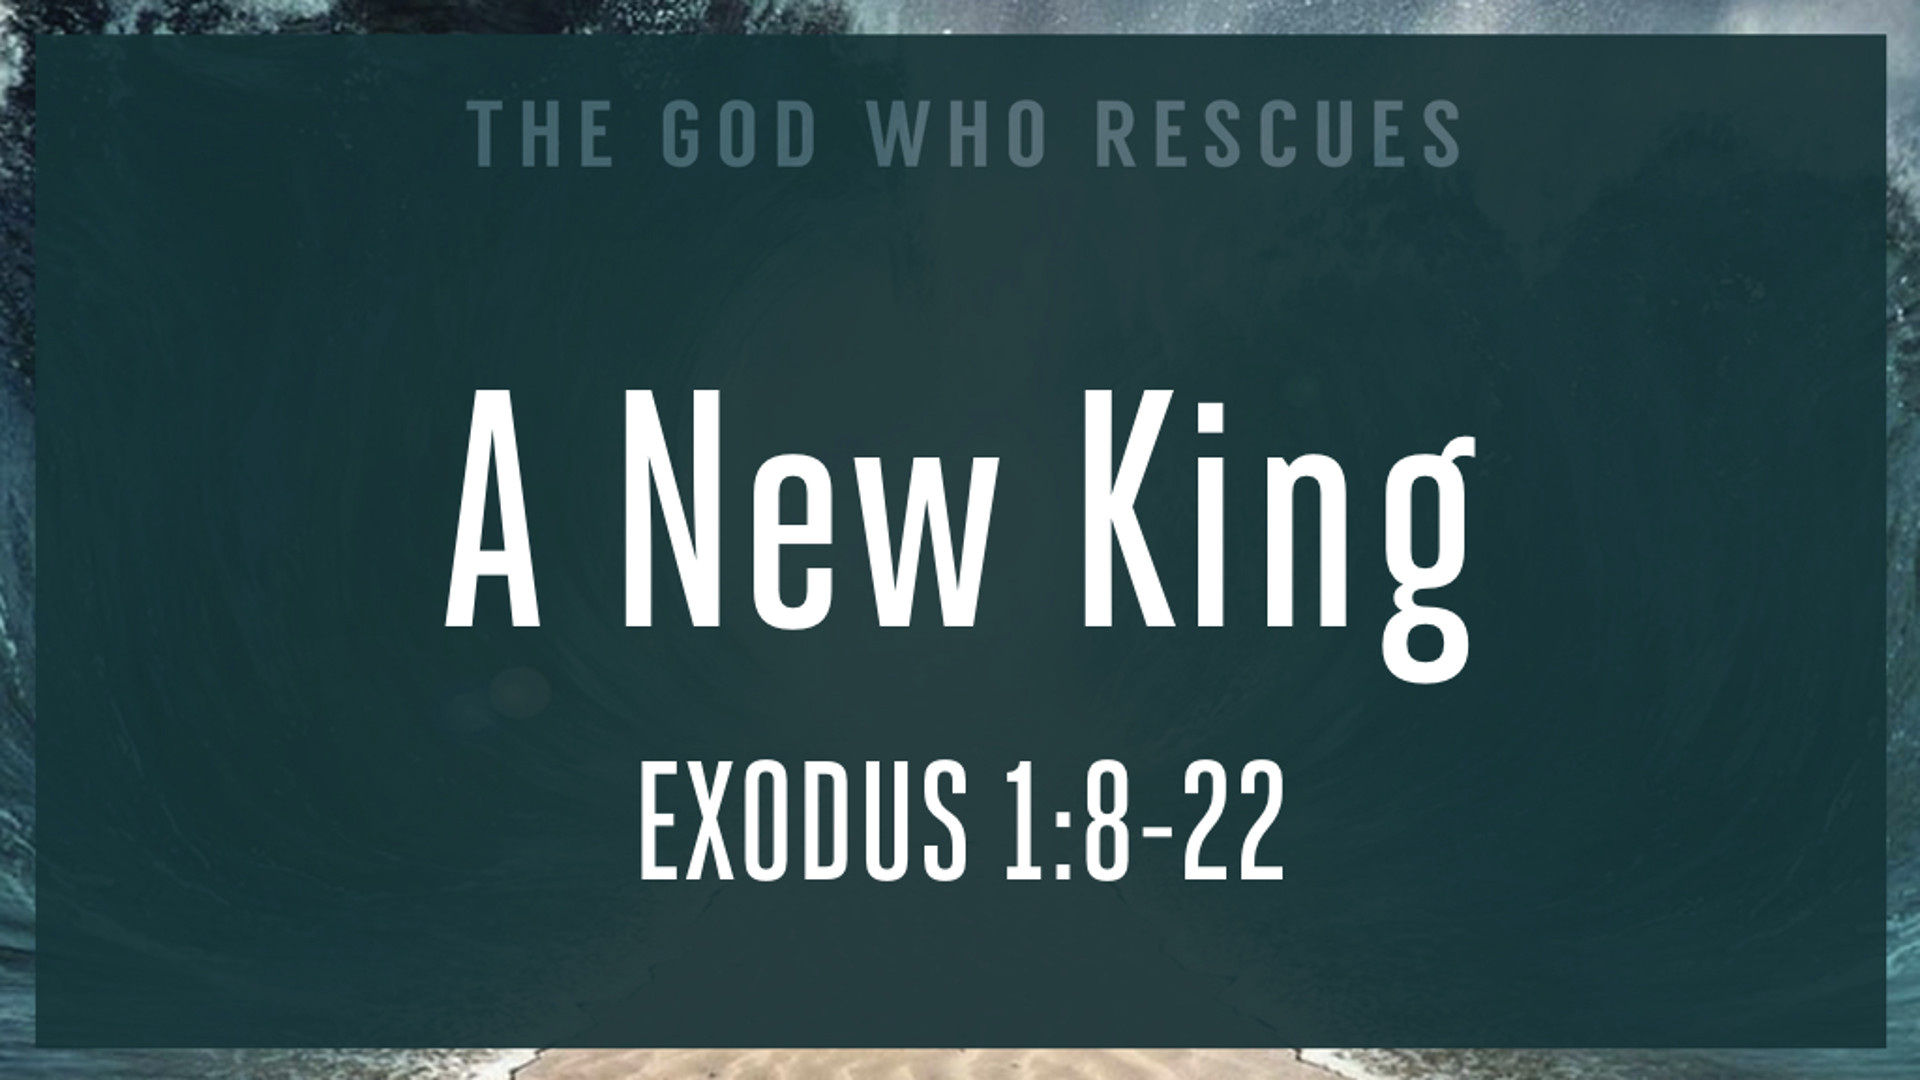 Exodus 1.8-22 A New King.jpg